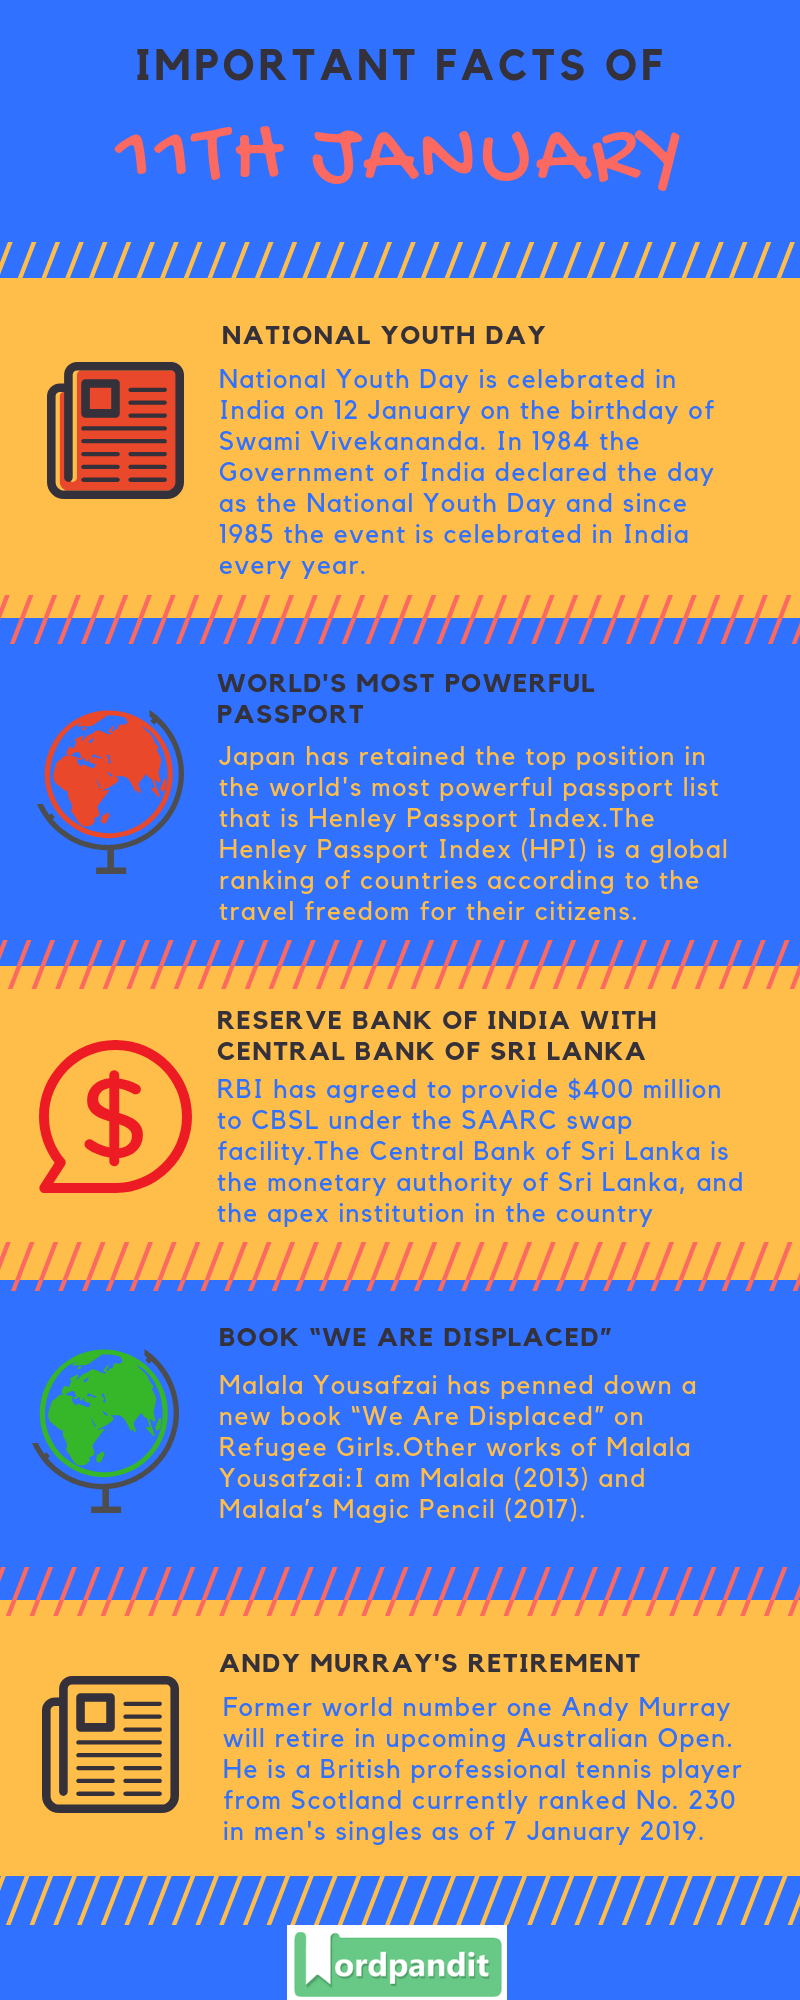 Daily Current Affairs 11 January 2019 Current Affairs Quiz 11 January 2019 Current Affairs Infographic